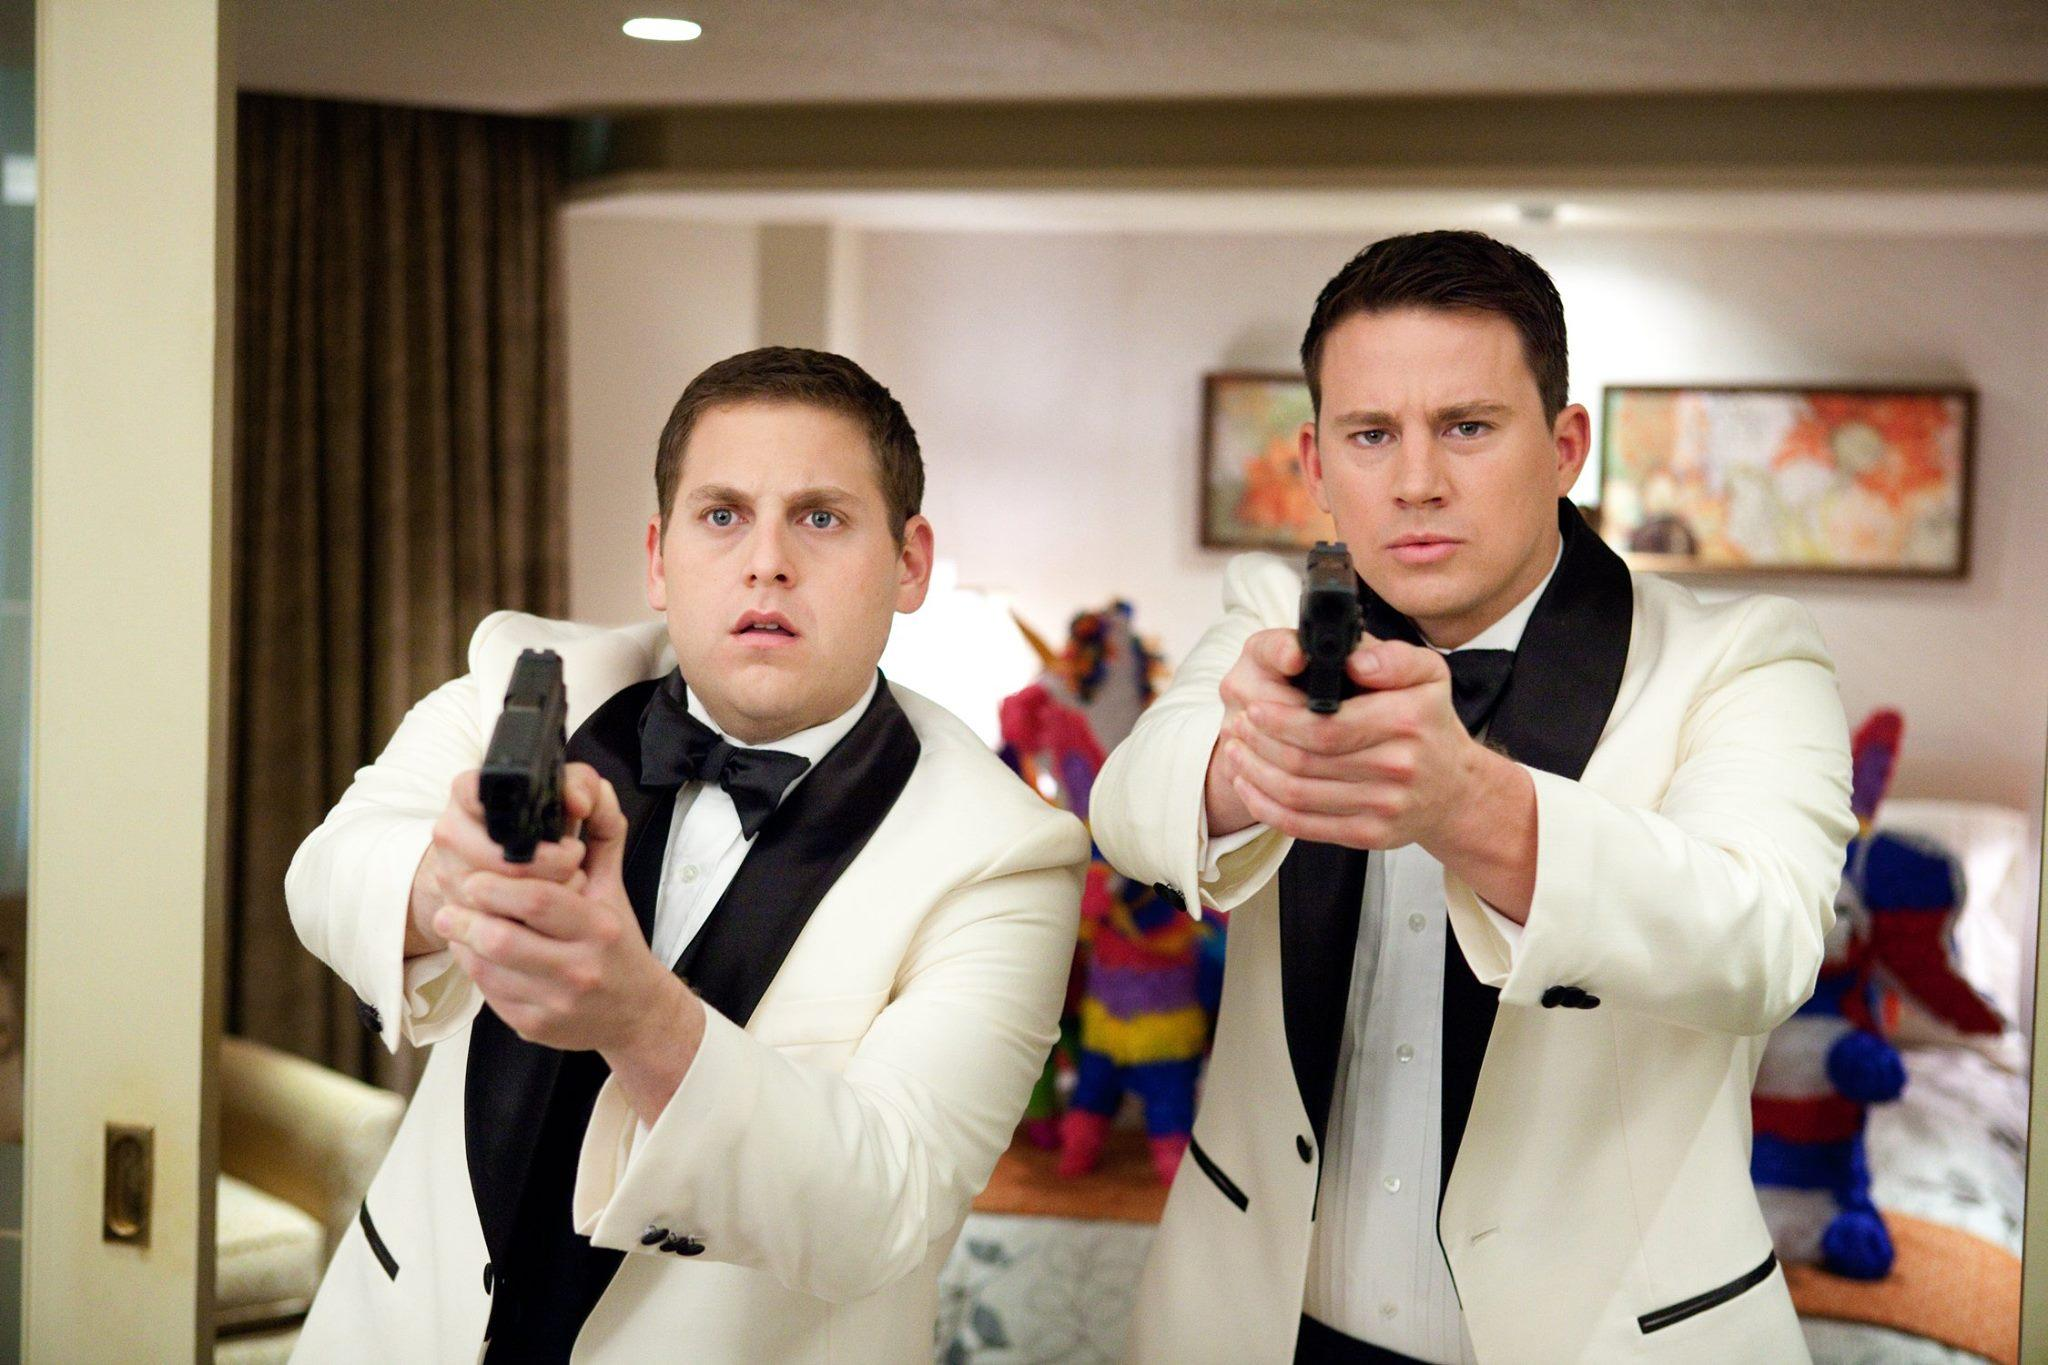 Jonah Hill as Schimdt and Channing Tatum as Jenko